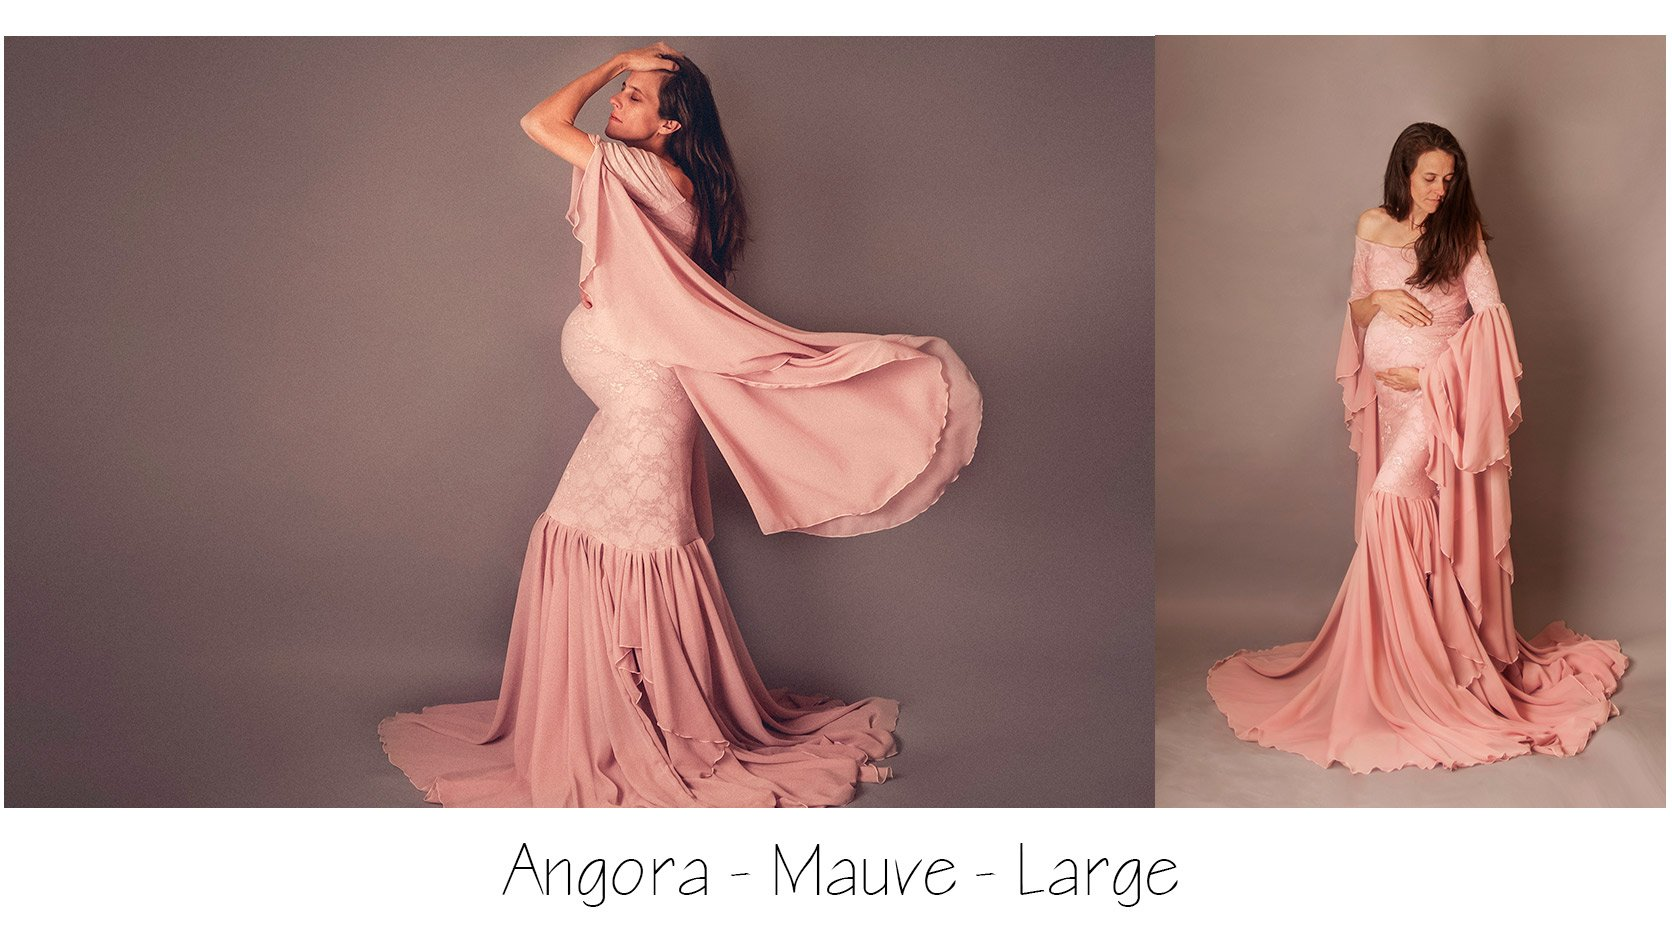 image of pregnant woman in mauve angora gown by sew trendy accessories